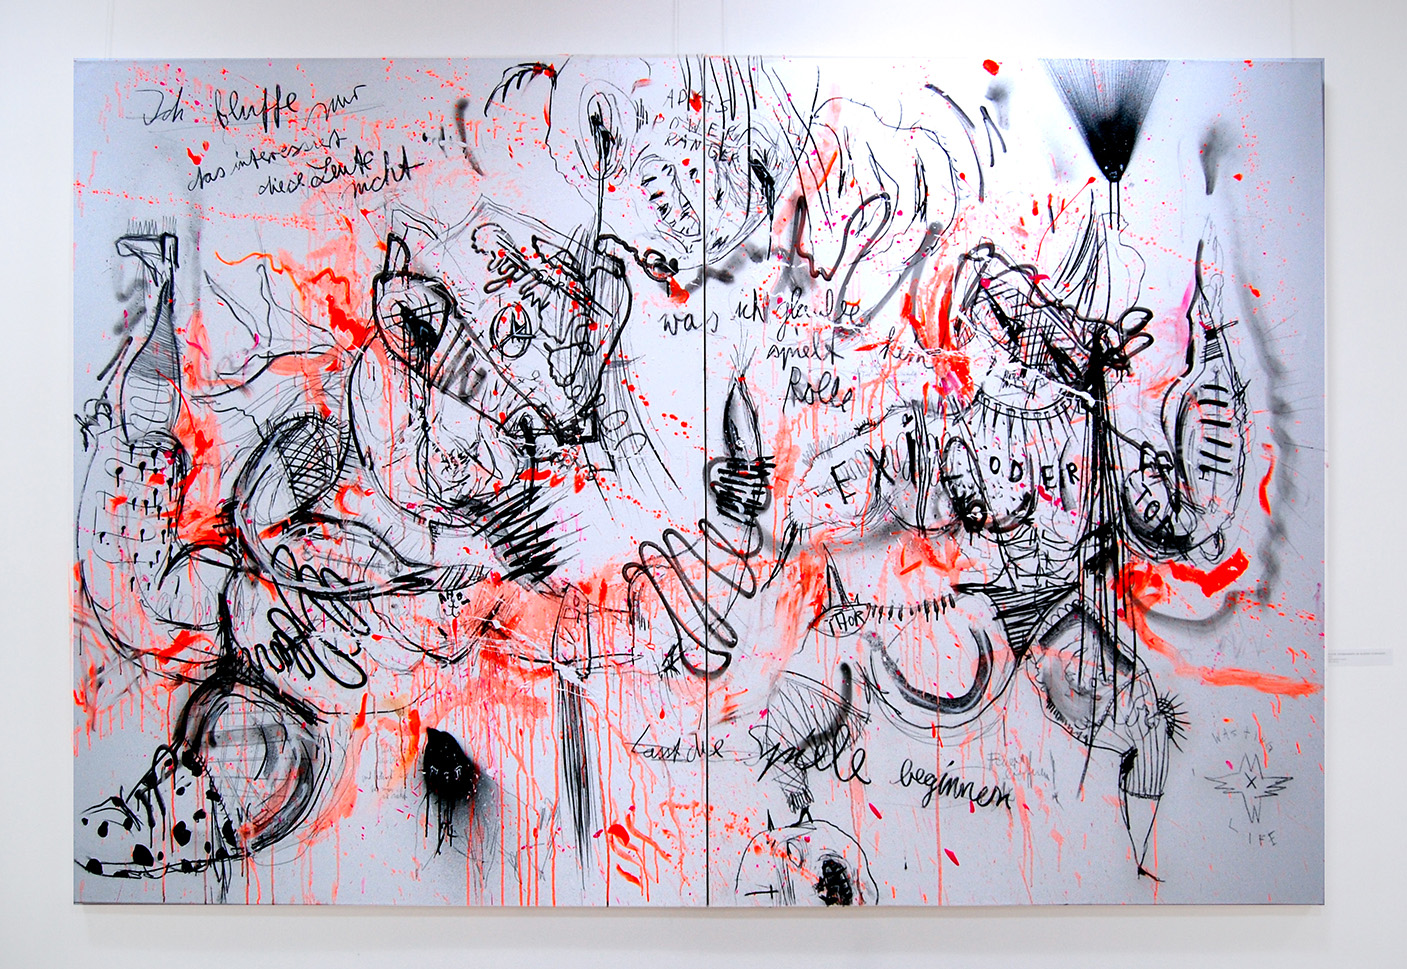 WAYNE INTERESSIERTS IM KLEINEN SCHWARZEN, 2012, mixed media on canvas, 200x300cm